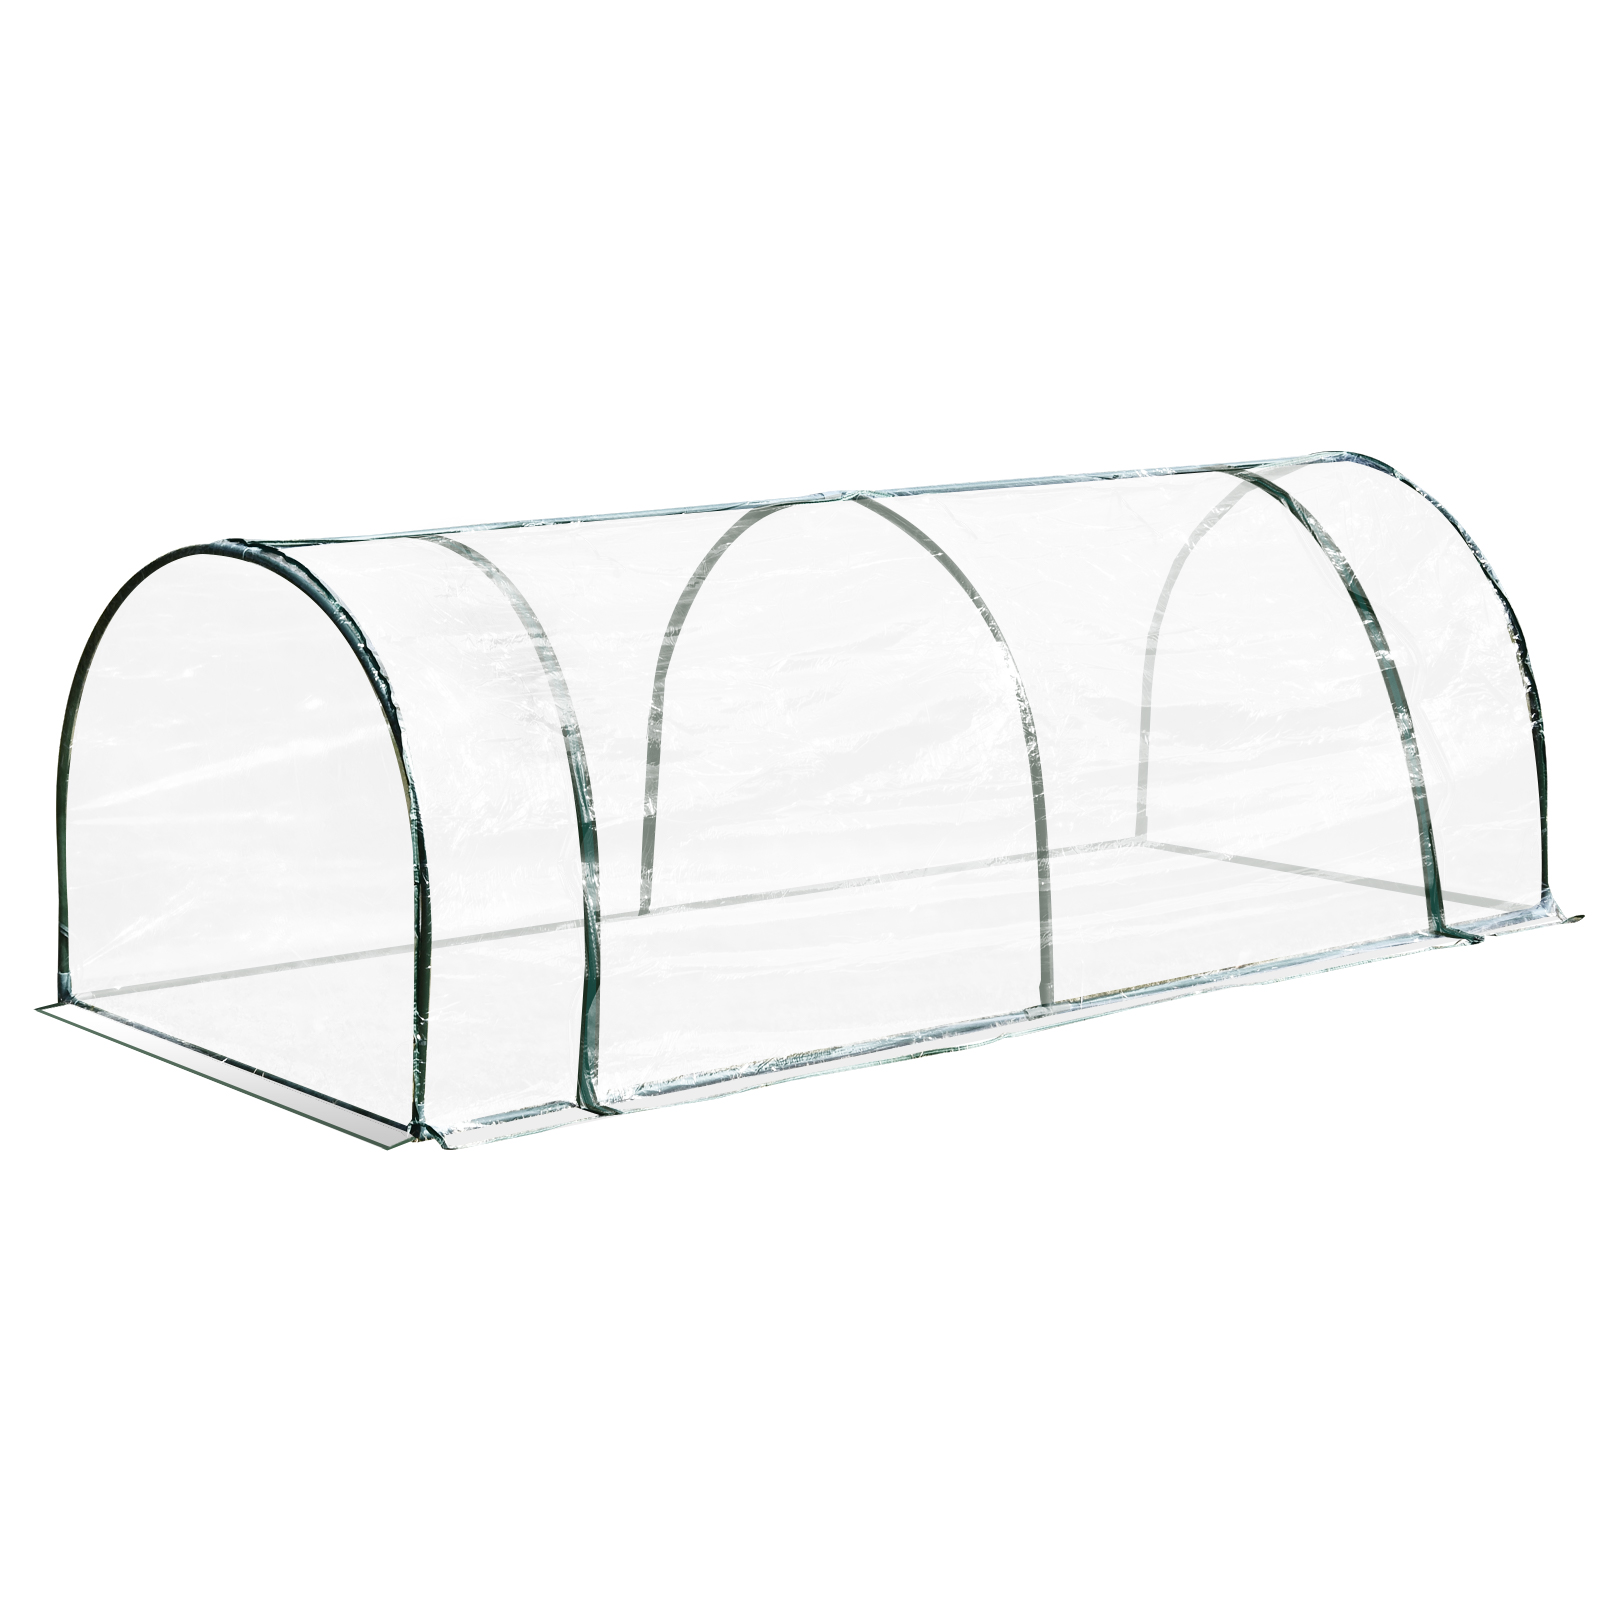 Outsunny PVC Greenhouse Tunnel Steel Frame Transparent 250x100x80cm